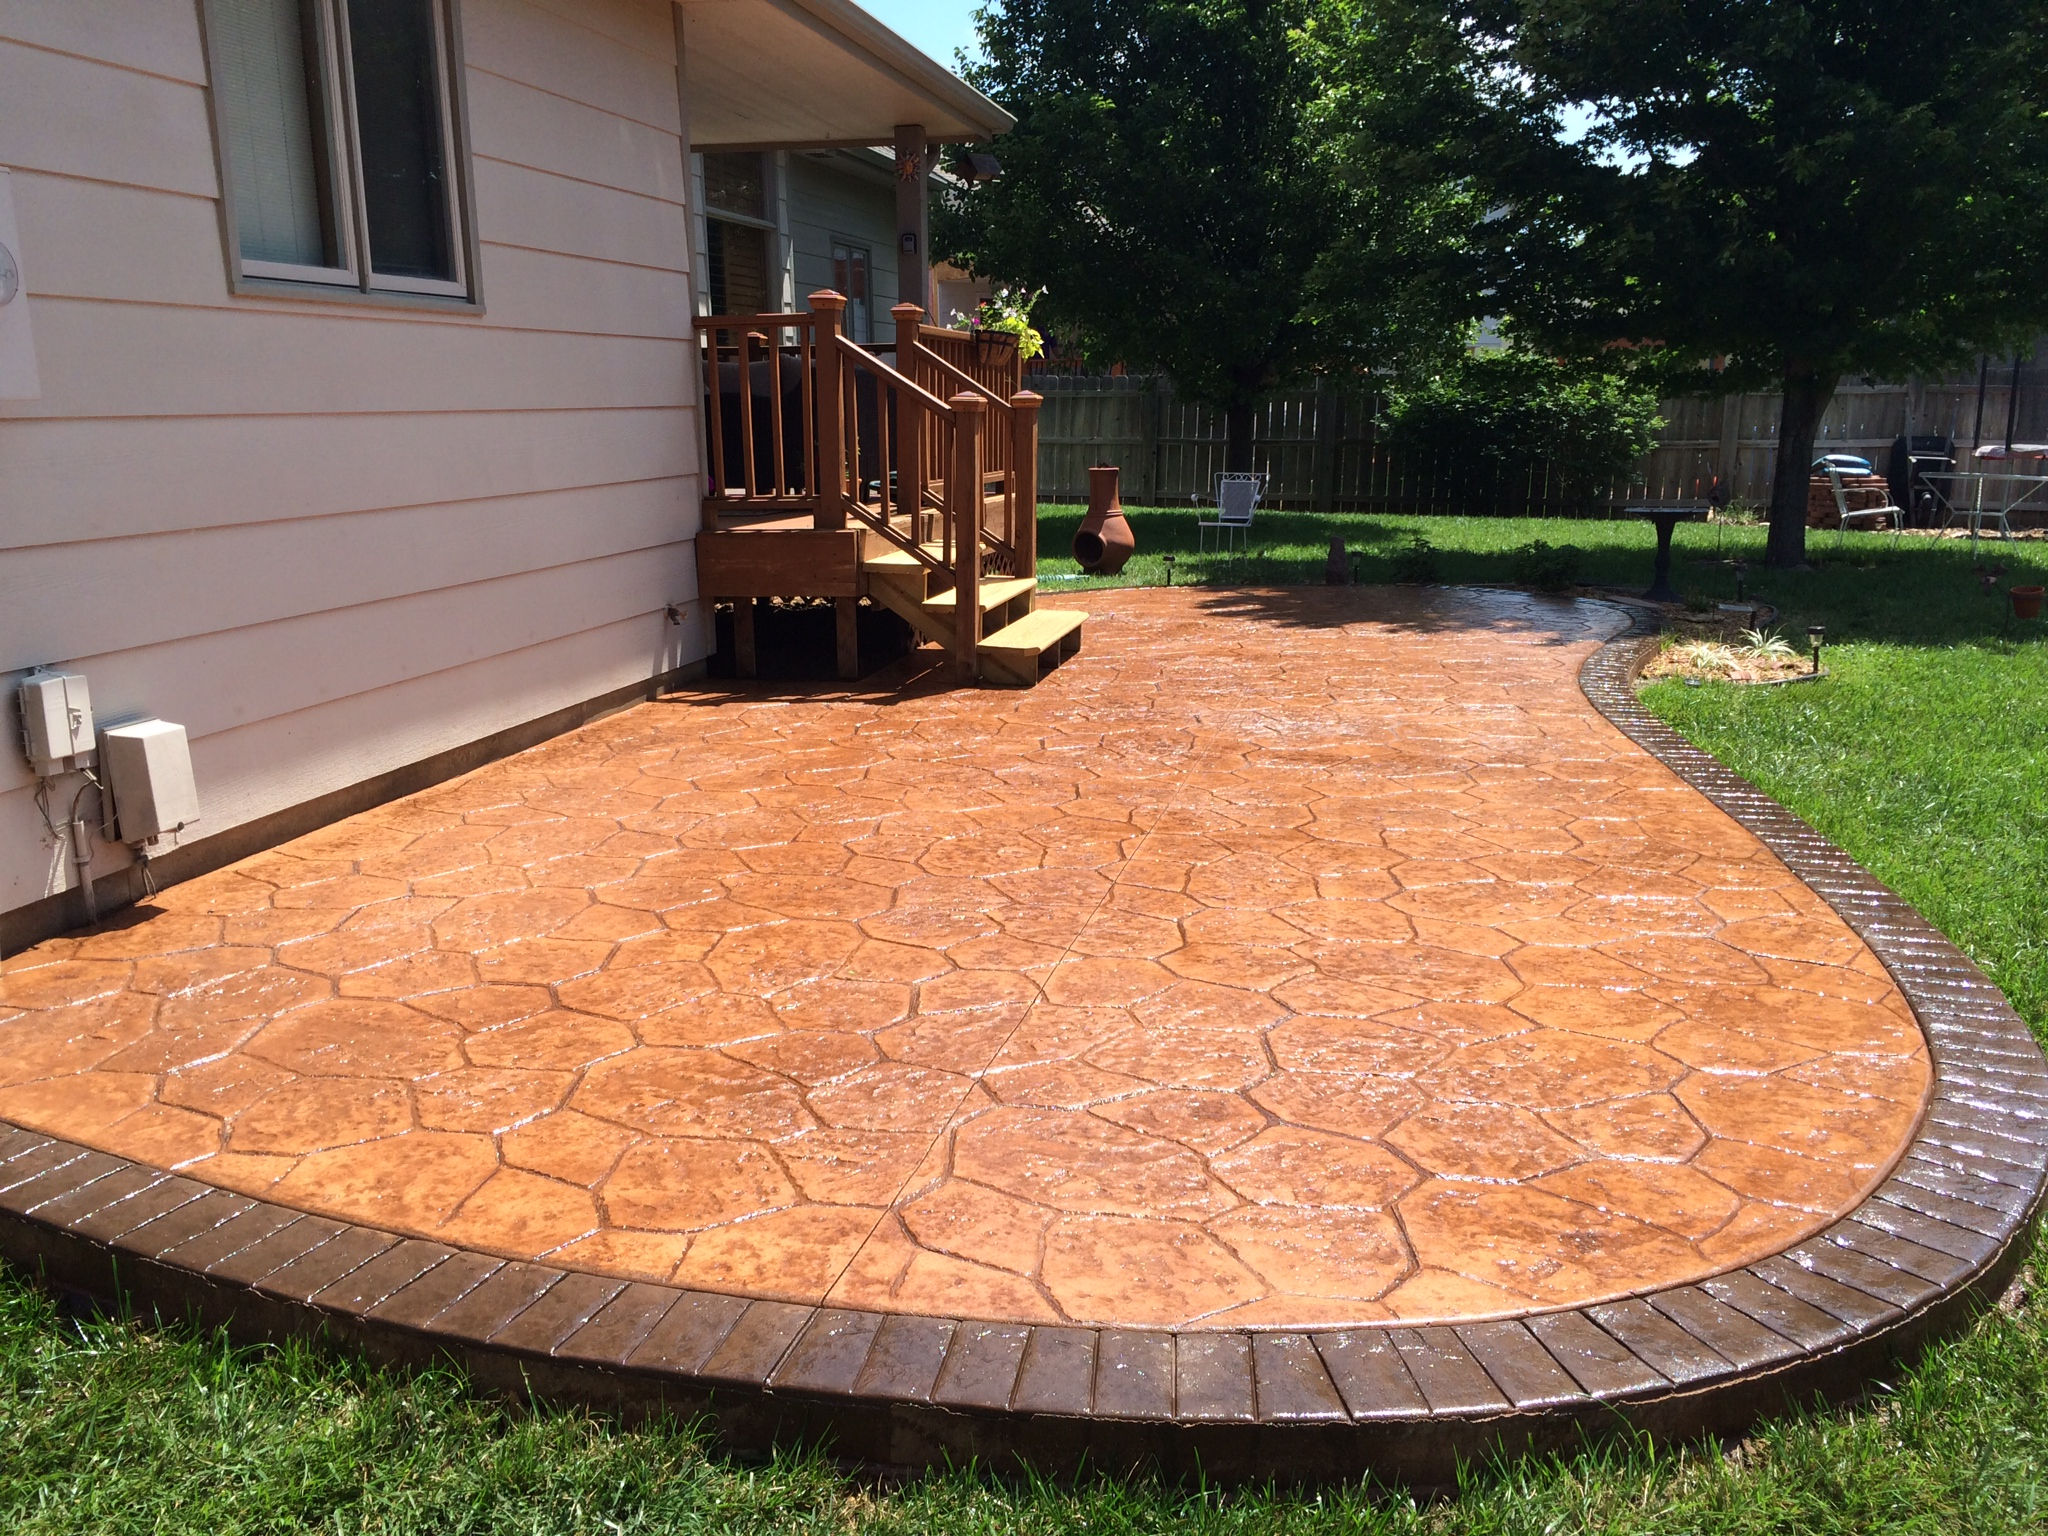 Patio Pavers Can Transform Your Backyard Patio Pavers